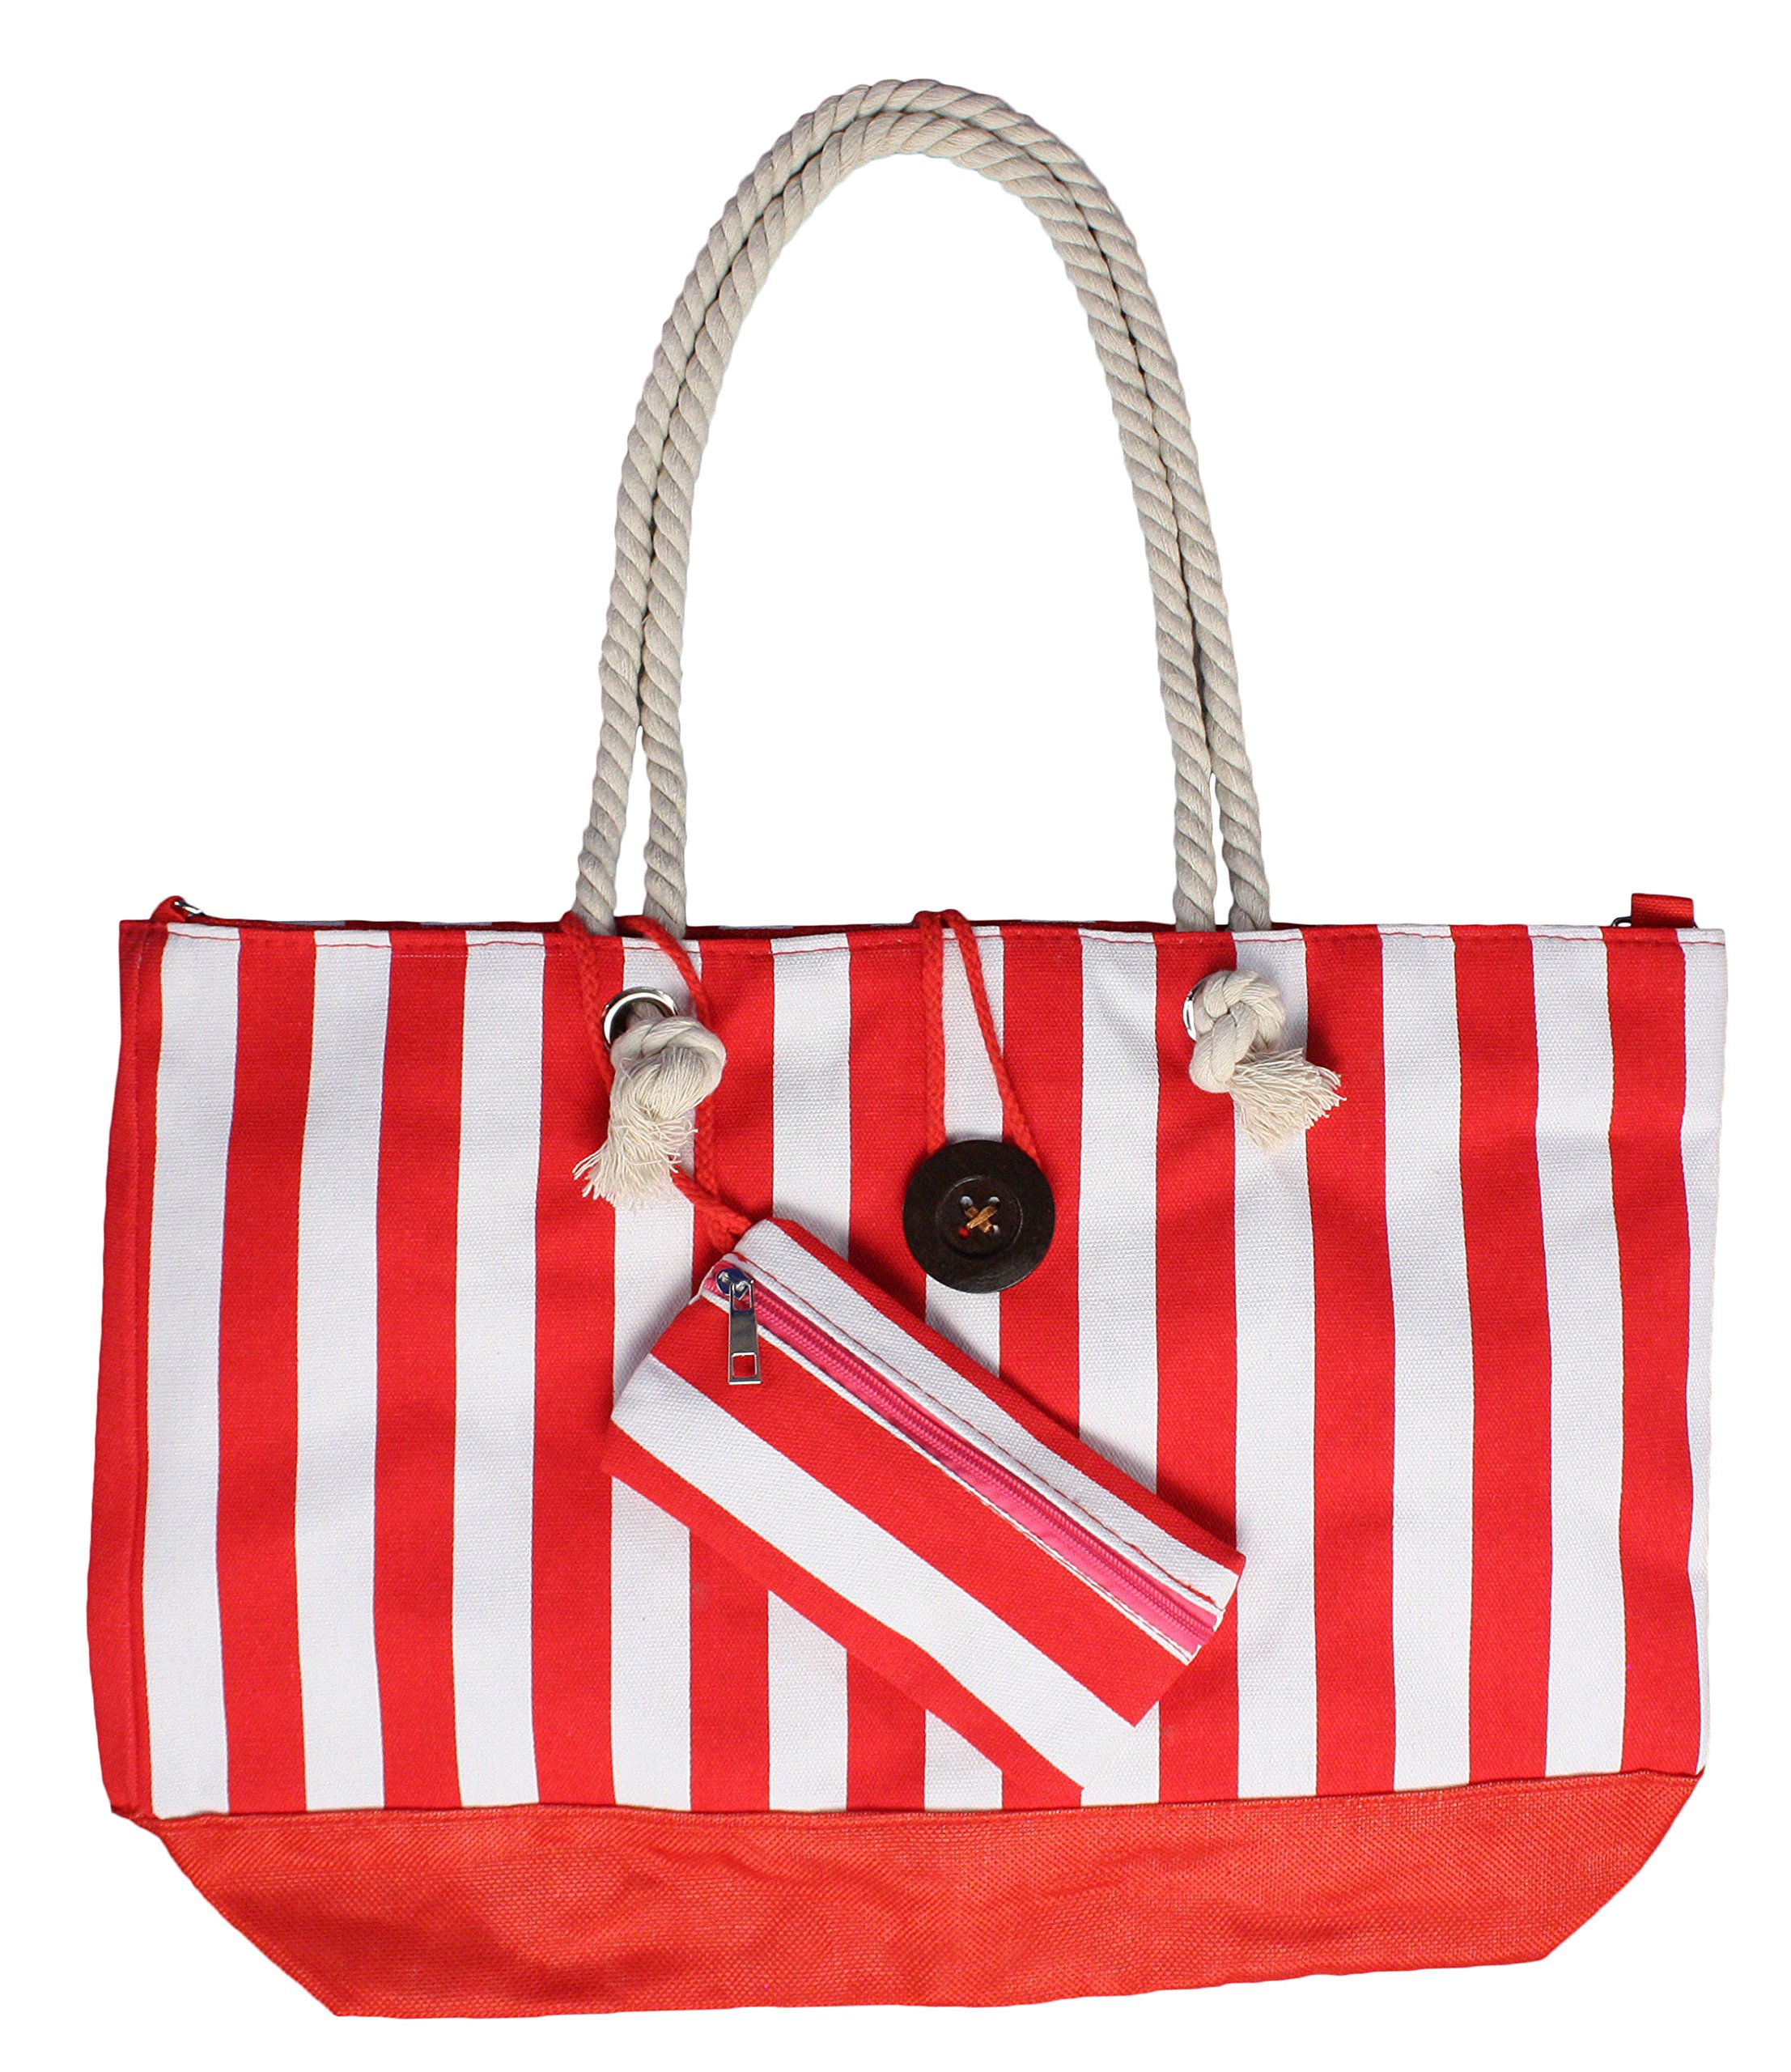 Heavy Duty Canvas Beach Bag Large Tote with Inner Lining - Red/White